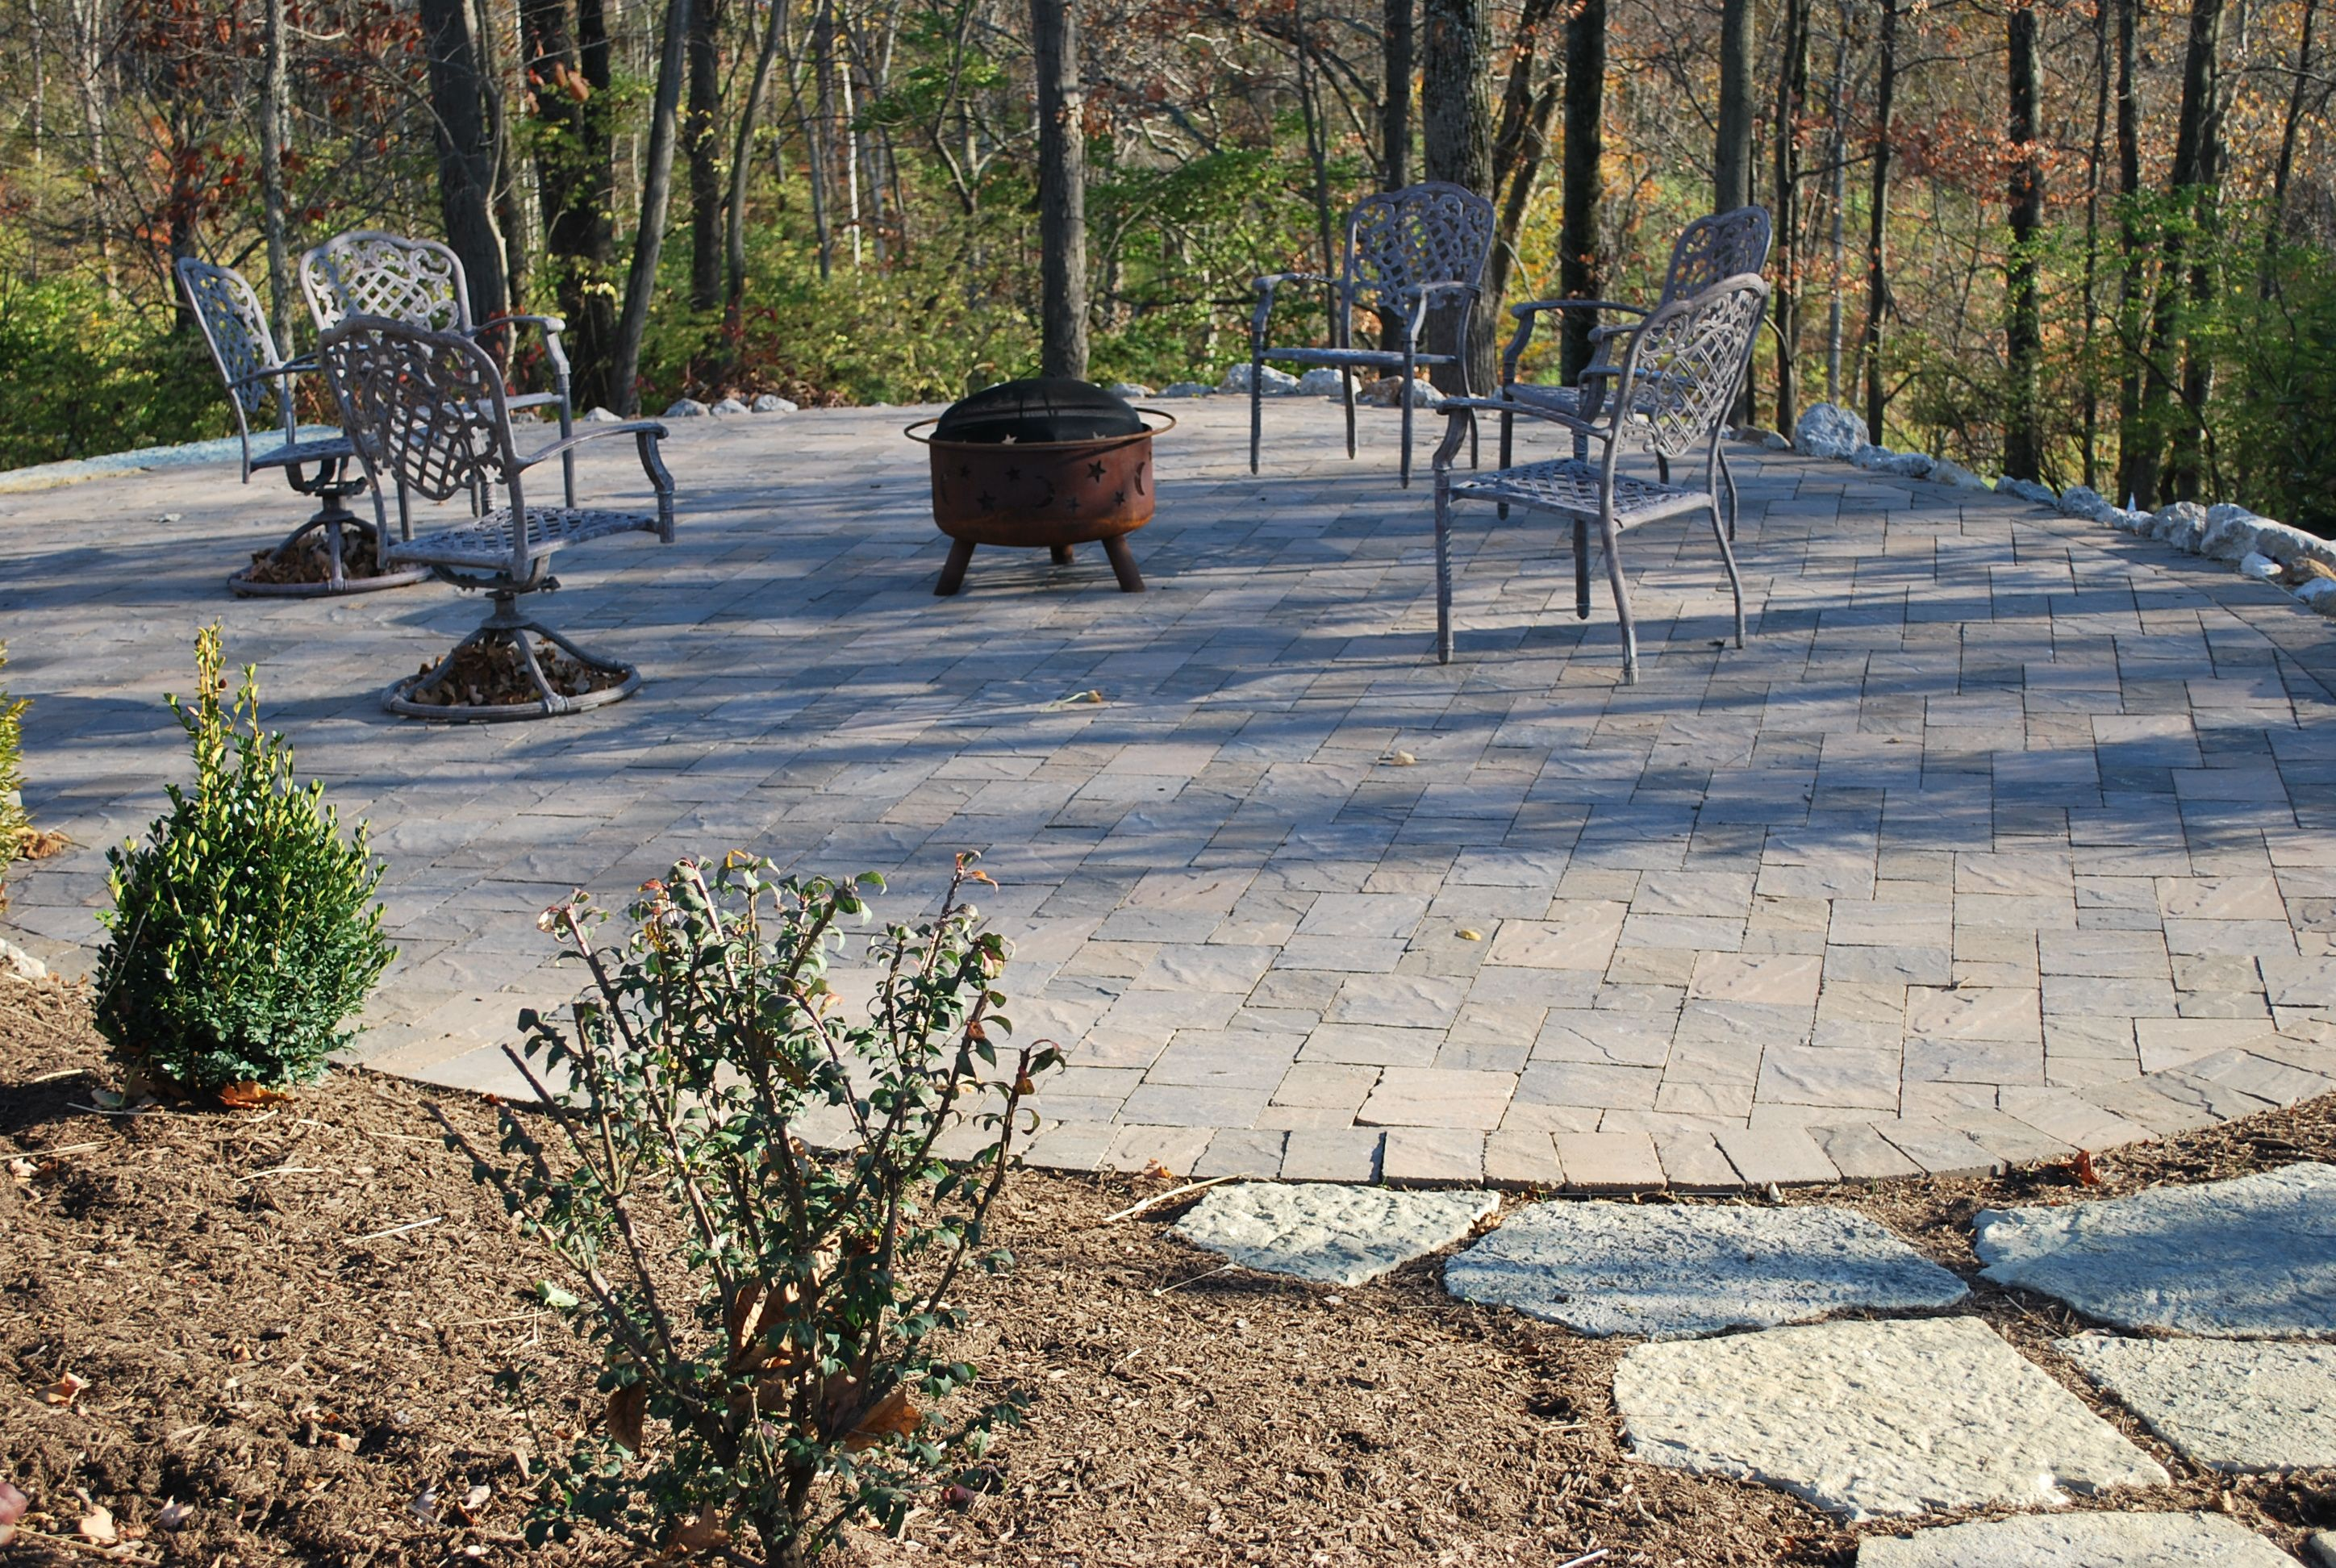 This walkway and patio was strategically planned and placed to enjoy the view.